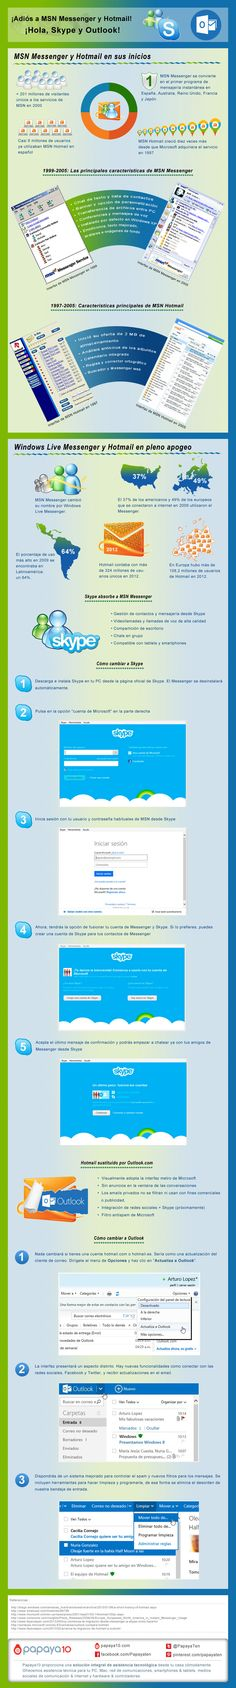 Skype y Outlook sustituyen a MSN y Hotmail #infografia #infographic #microsoft